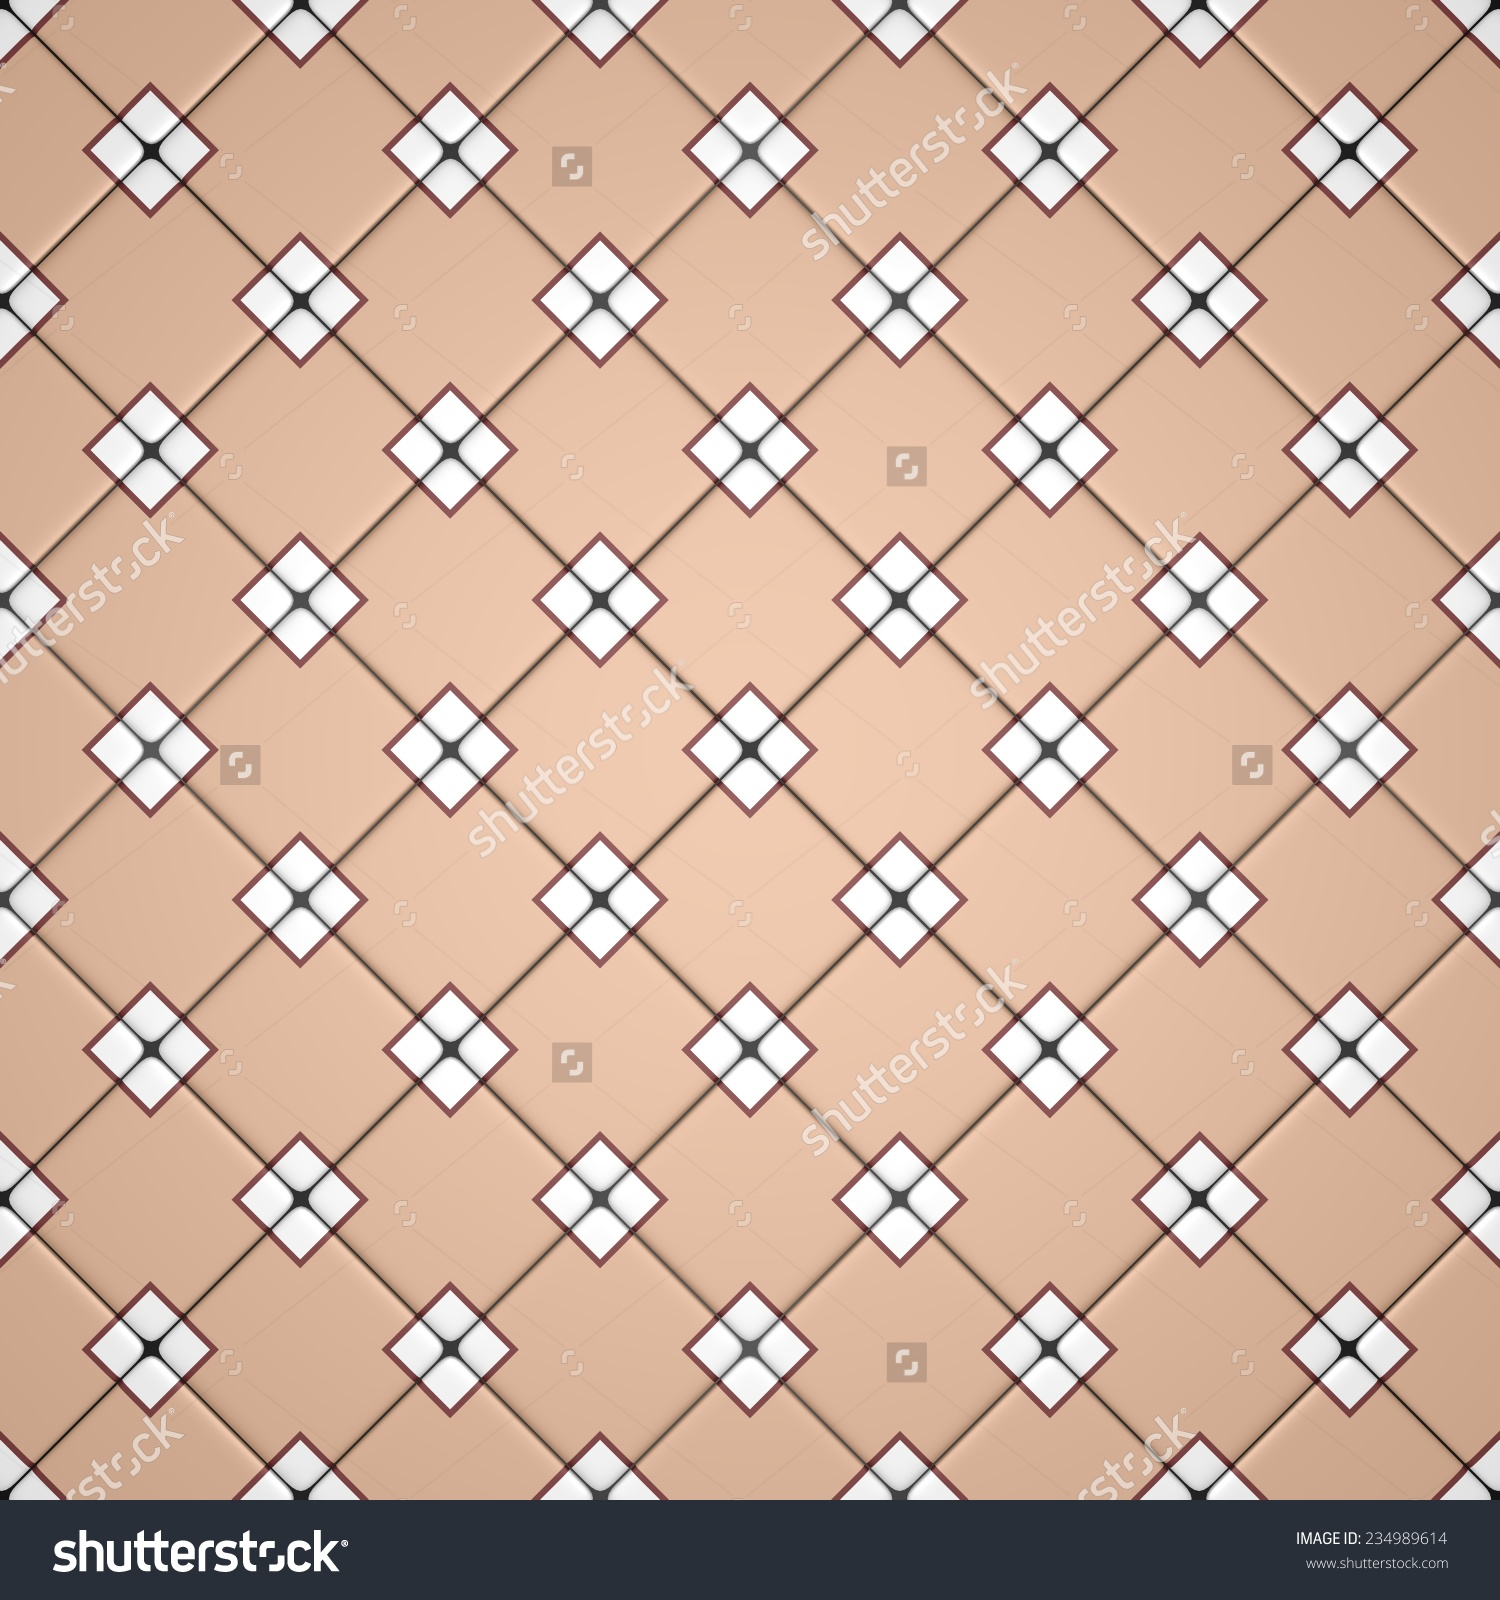 Brown And White Wallpaper Stock Photo 234989614 Shutterstock 1500x1600